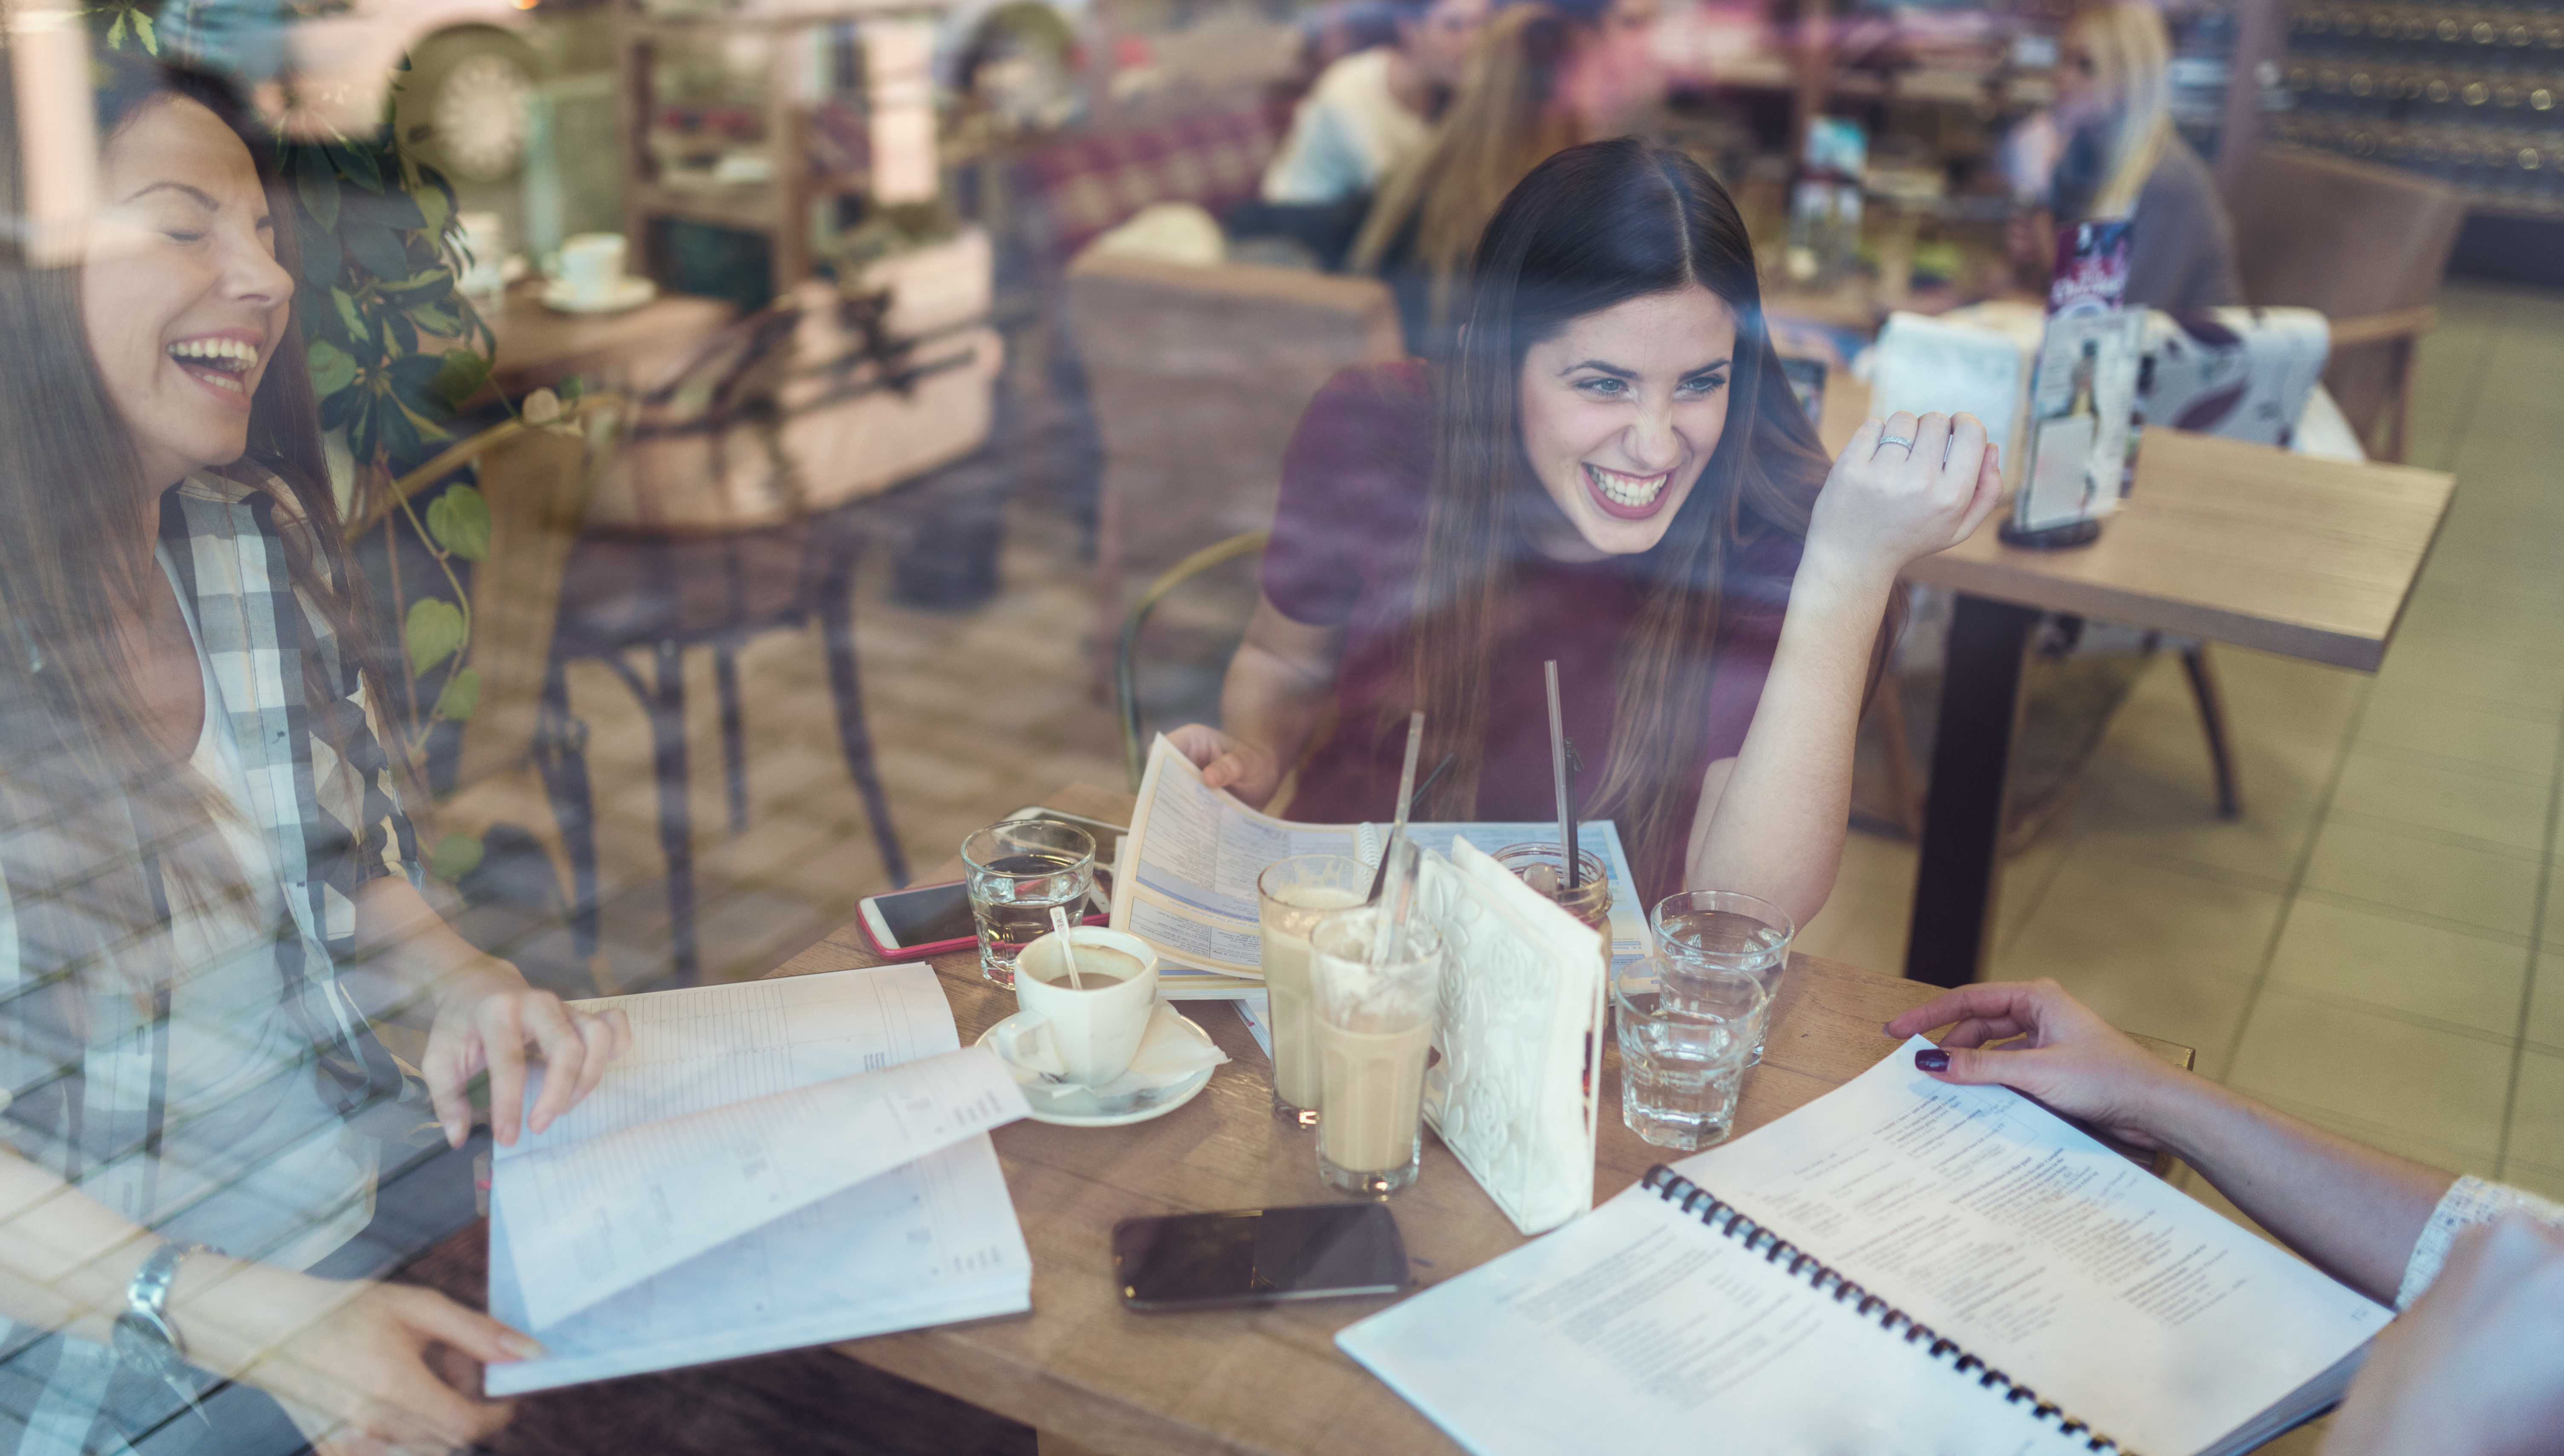 Smiling student girls talking in coffe shop after classes